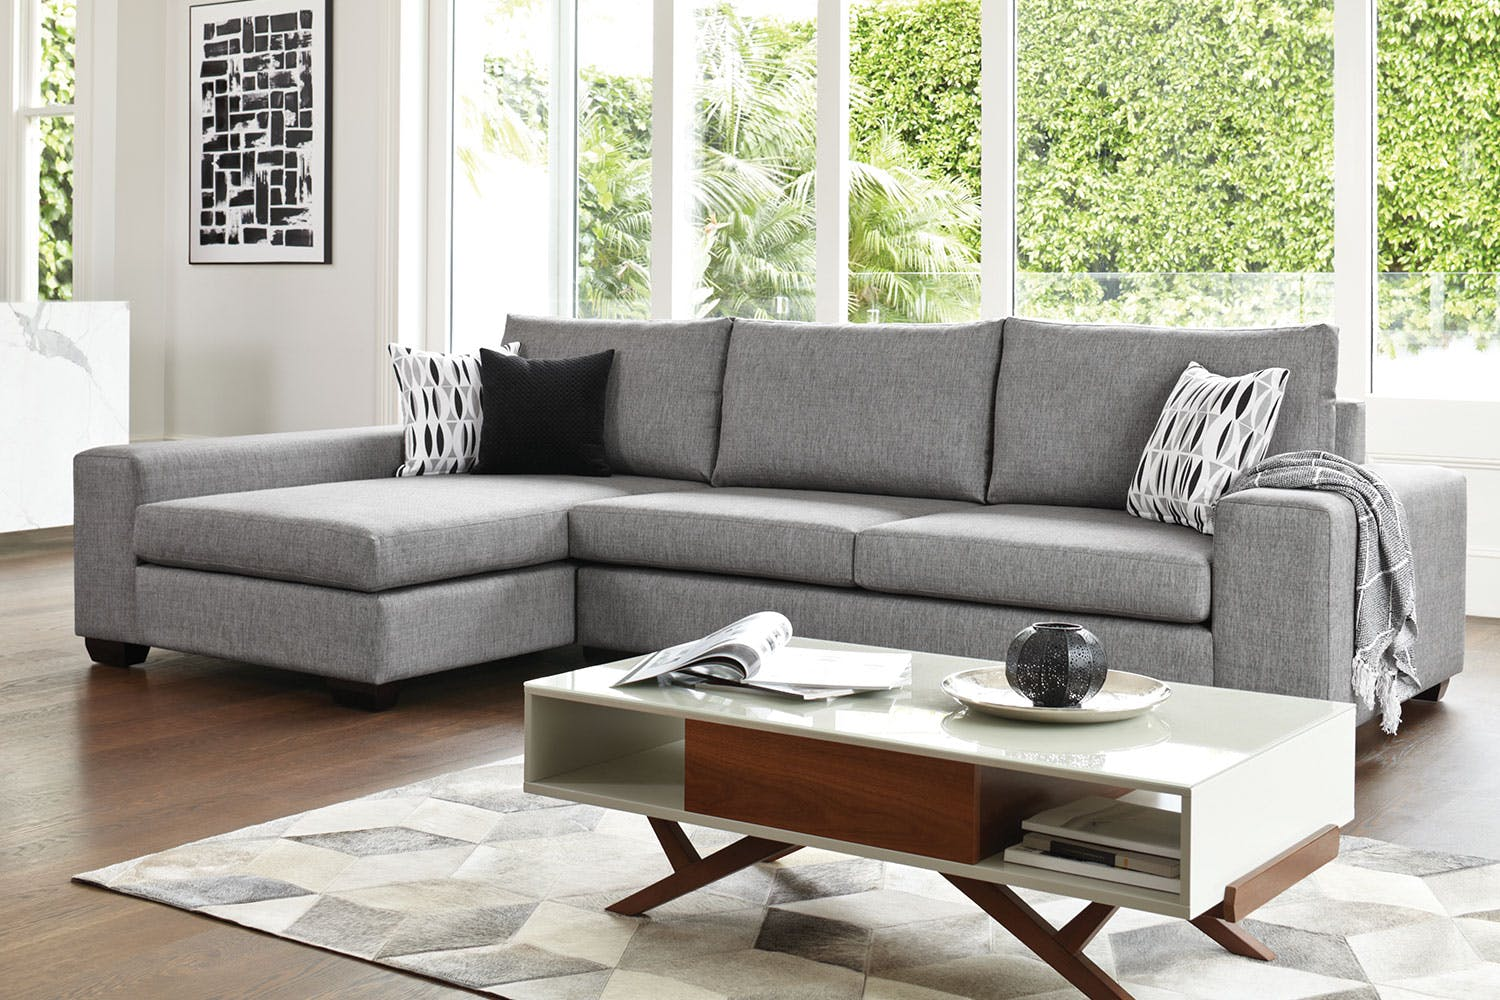 Kingdom 4 seater fabric sofa with chaise by furniture for 4 seater sofa with chaise